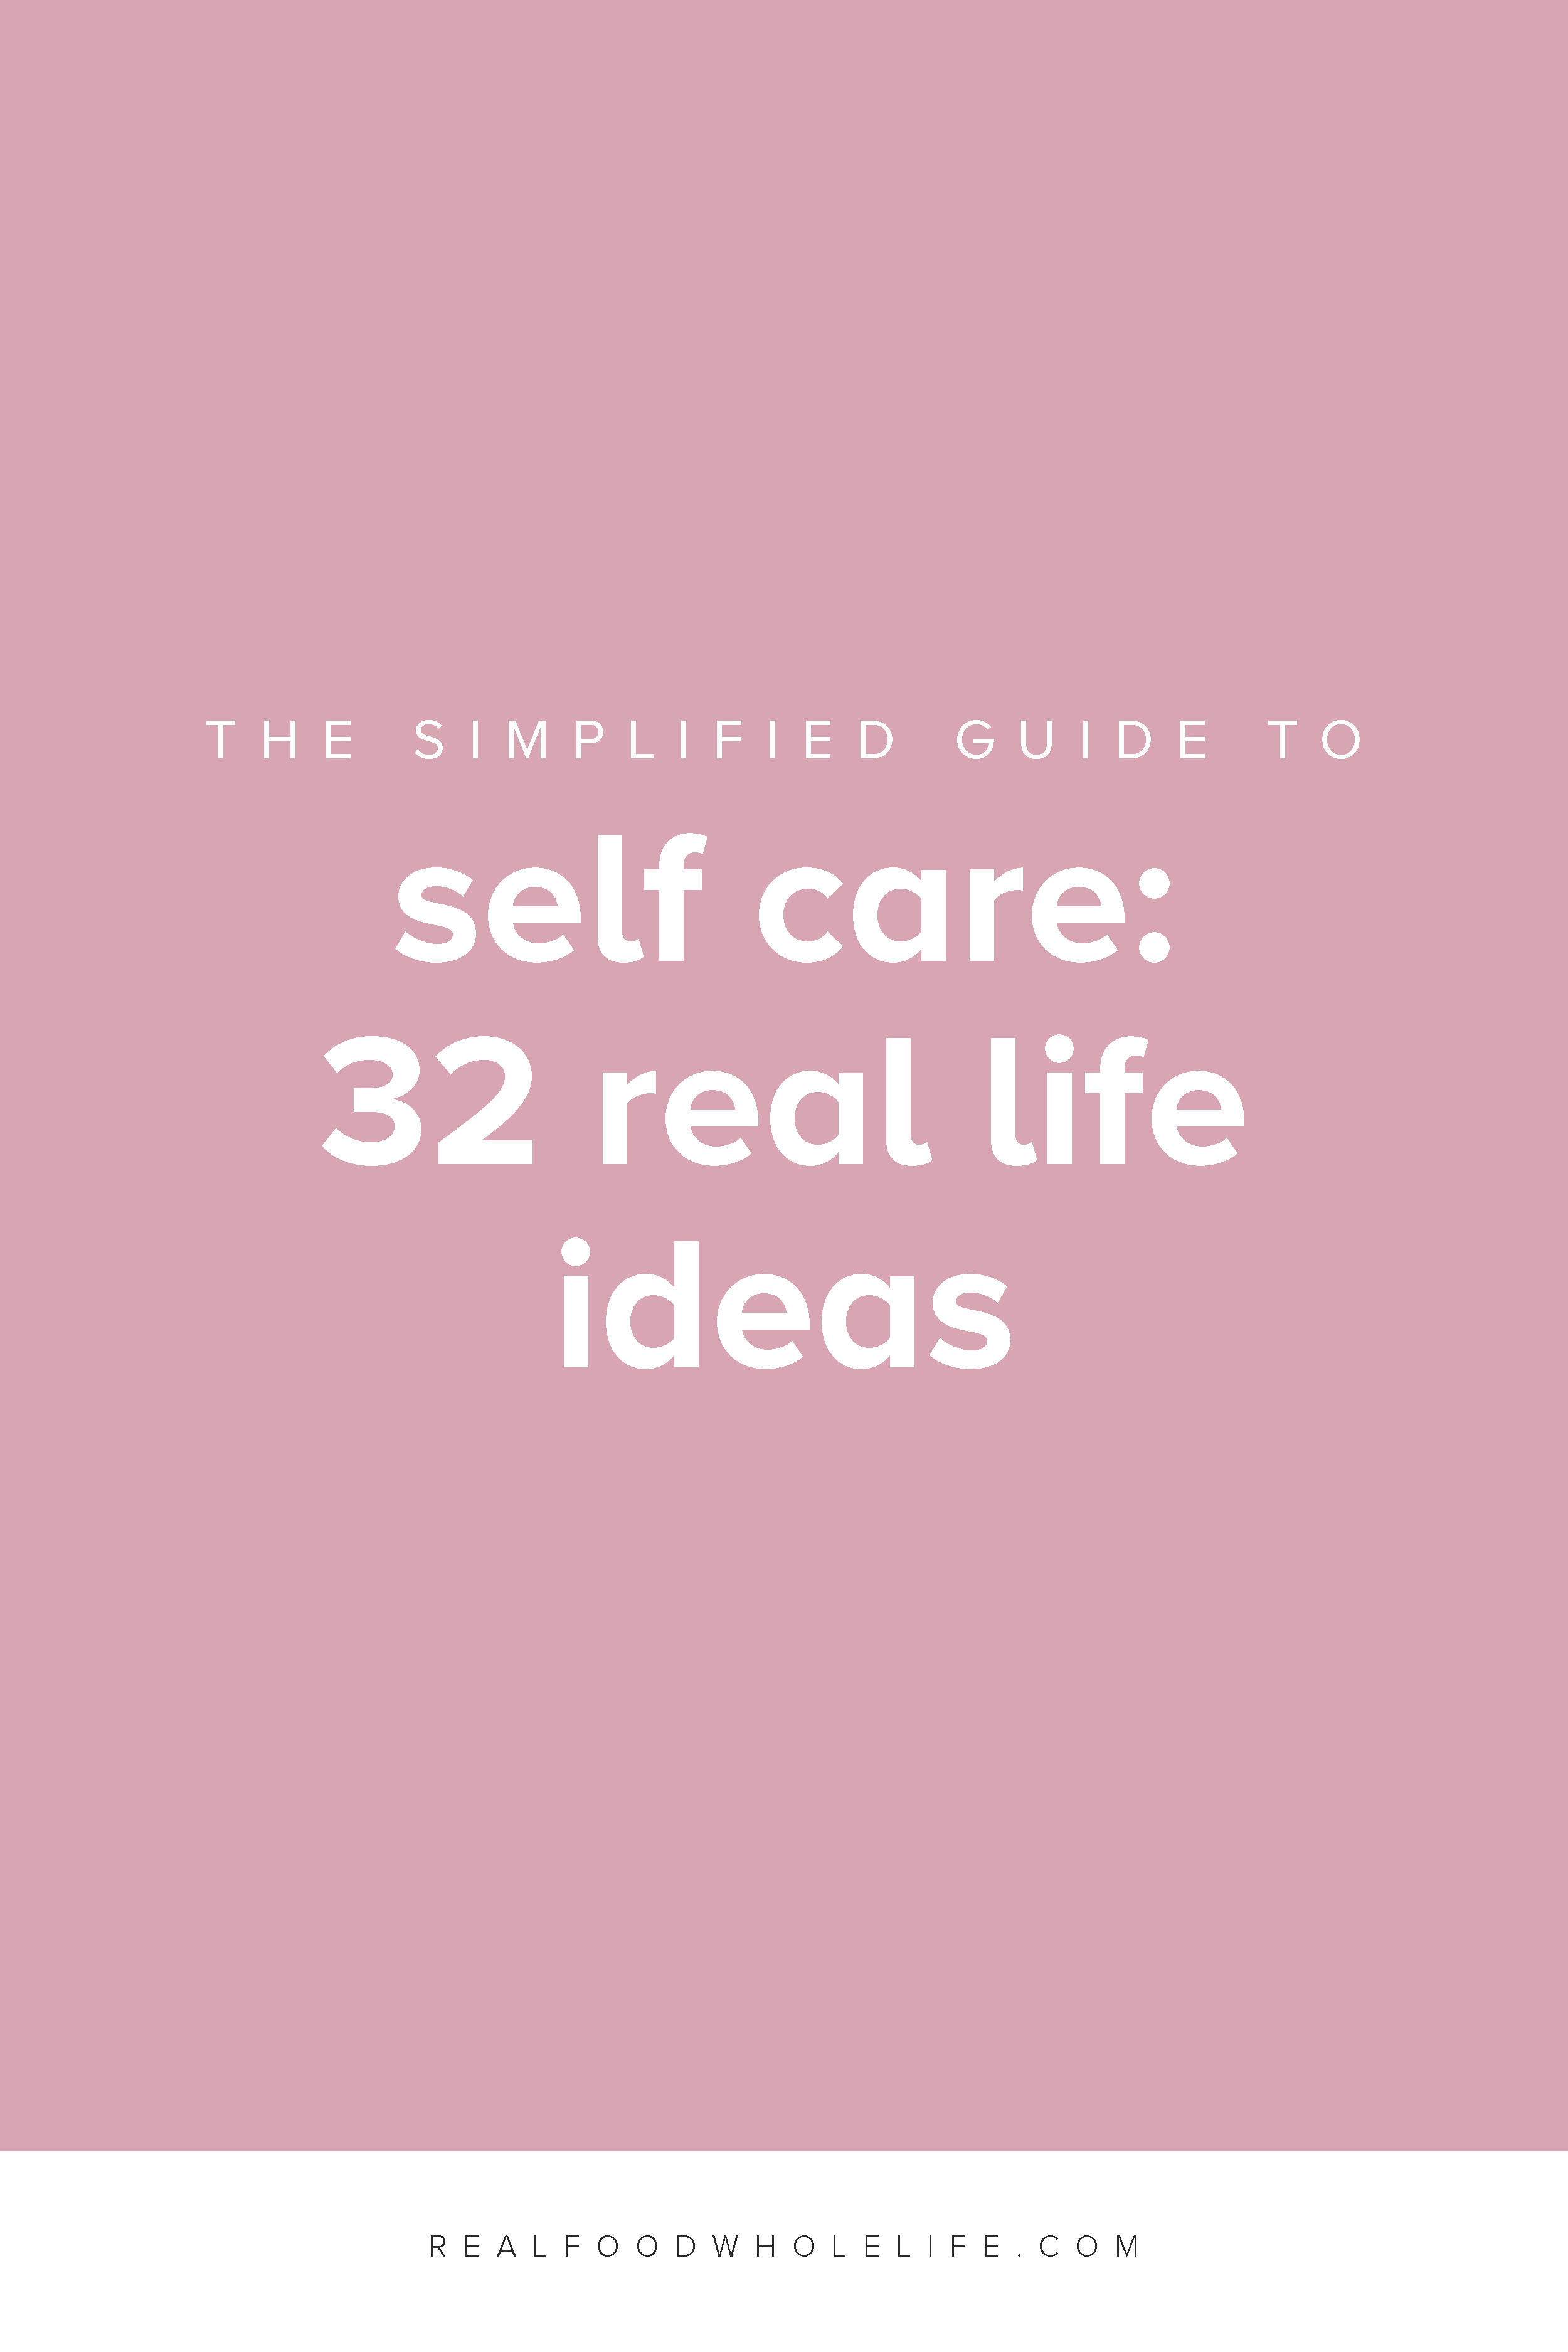 32 real life self-care ideas that go beyond baths and massages. #realfoodwholelife #healthylife #selfcare #selflove #wellness #healthy